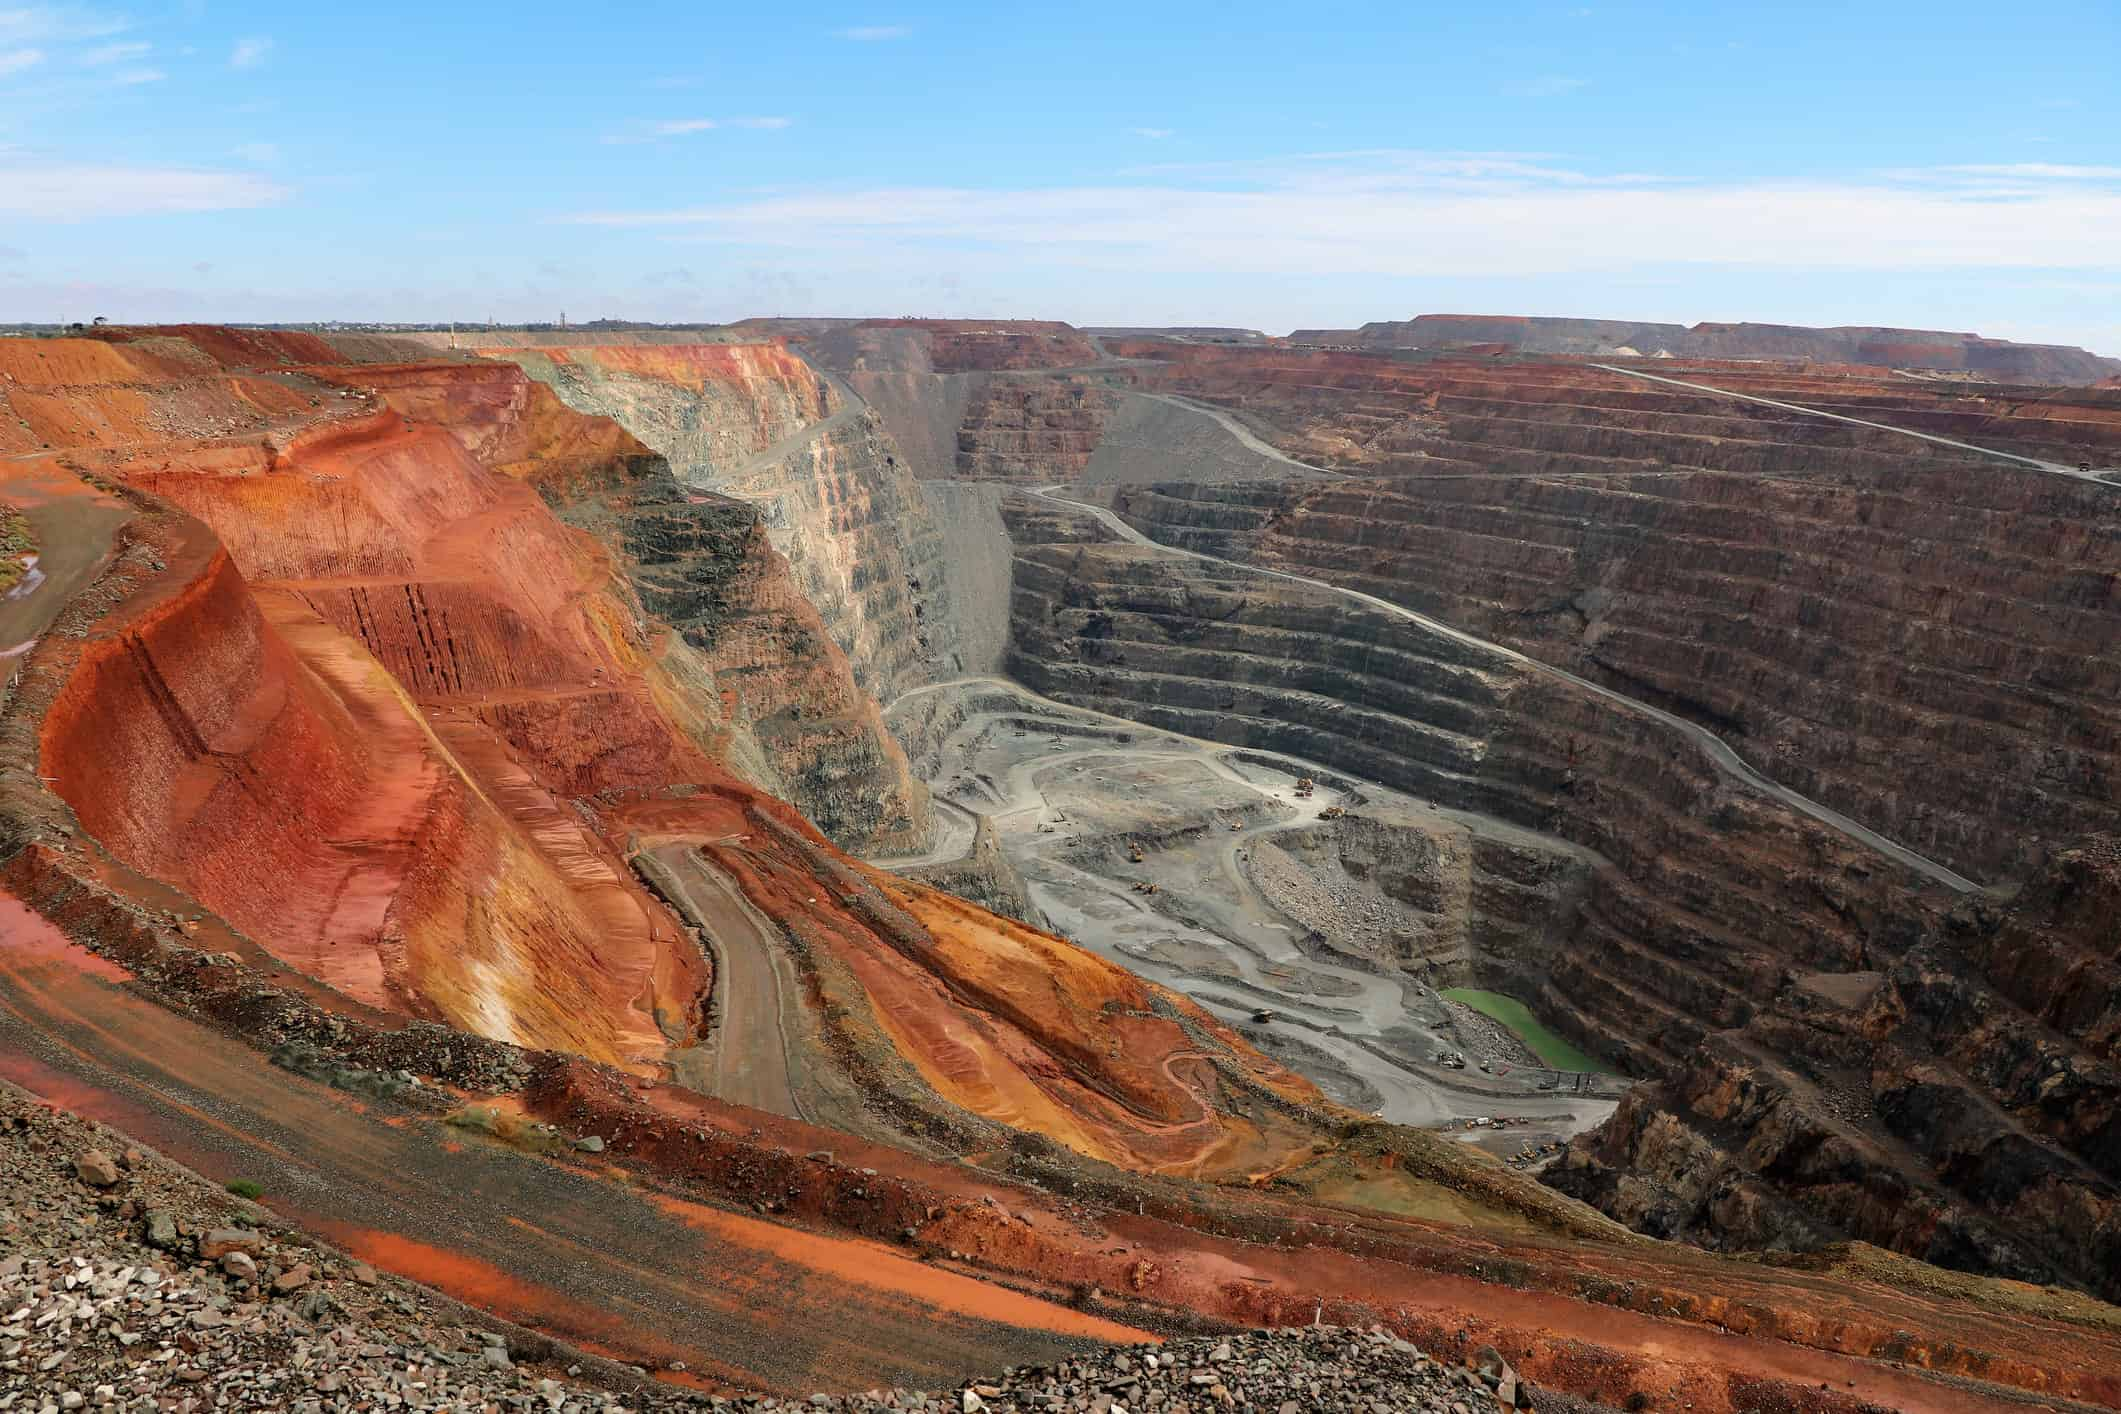 The Super Pit located in Kalgoorlie is the largest open-pit gold mine in Australia and one of the largest in the world.